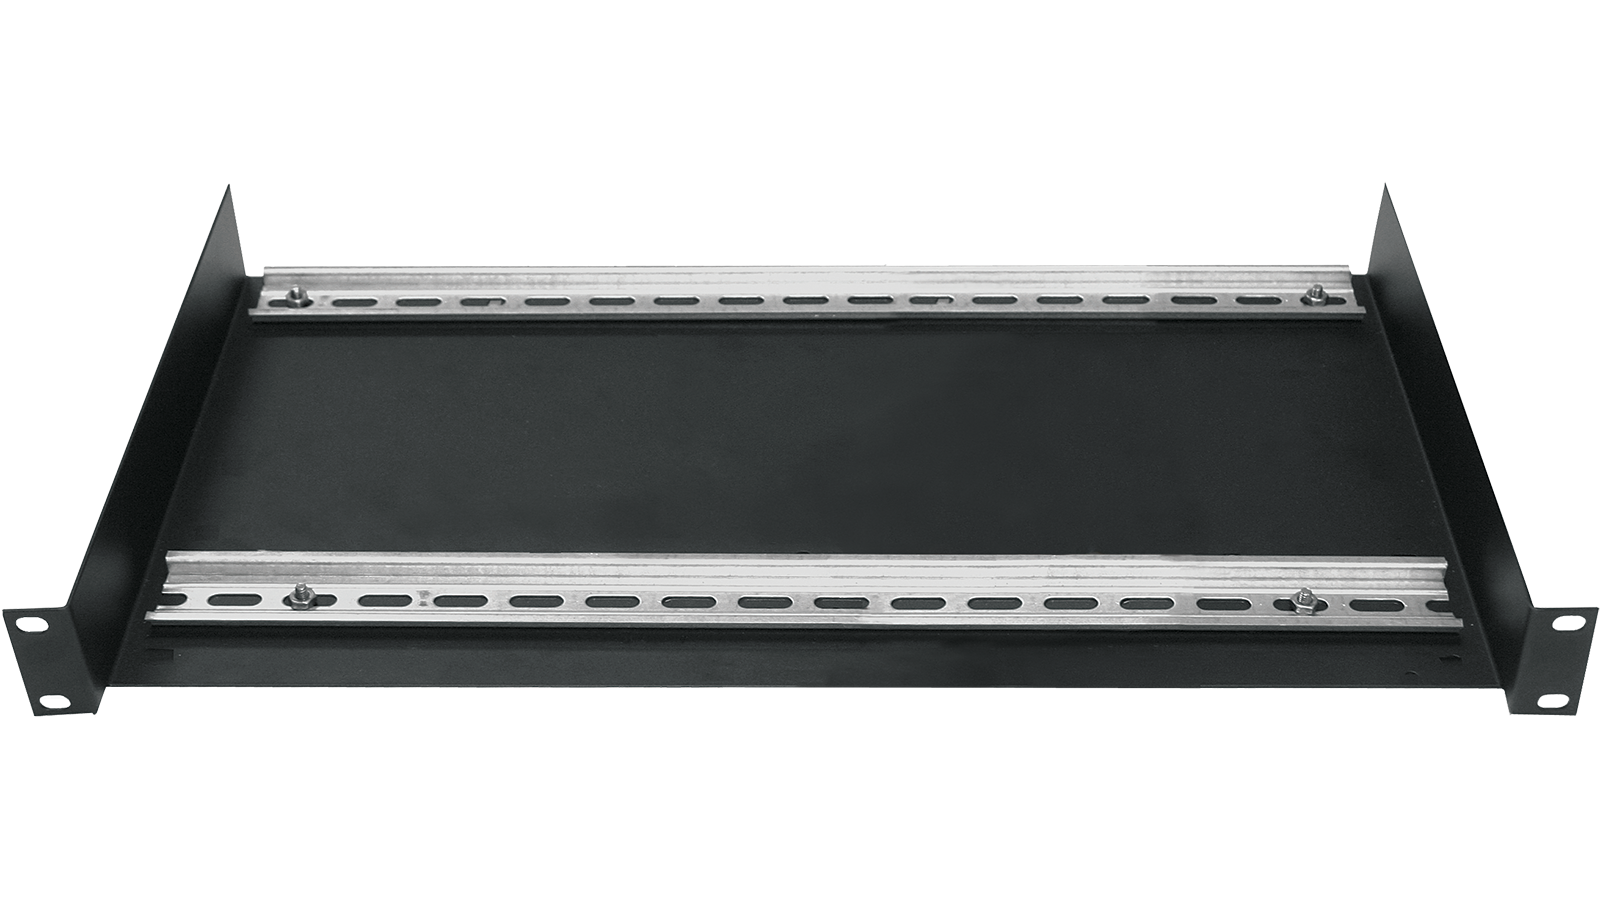 Din Rack Kit F Mount Tray For Avo Clip 4bt Wiring Diagram No Equivalent Alternates Available